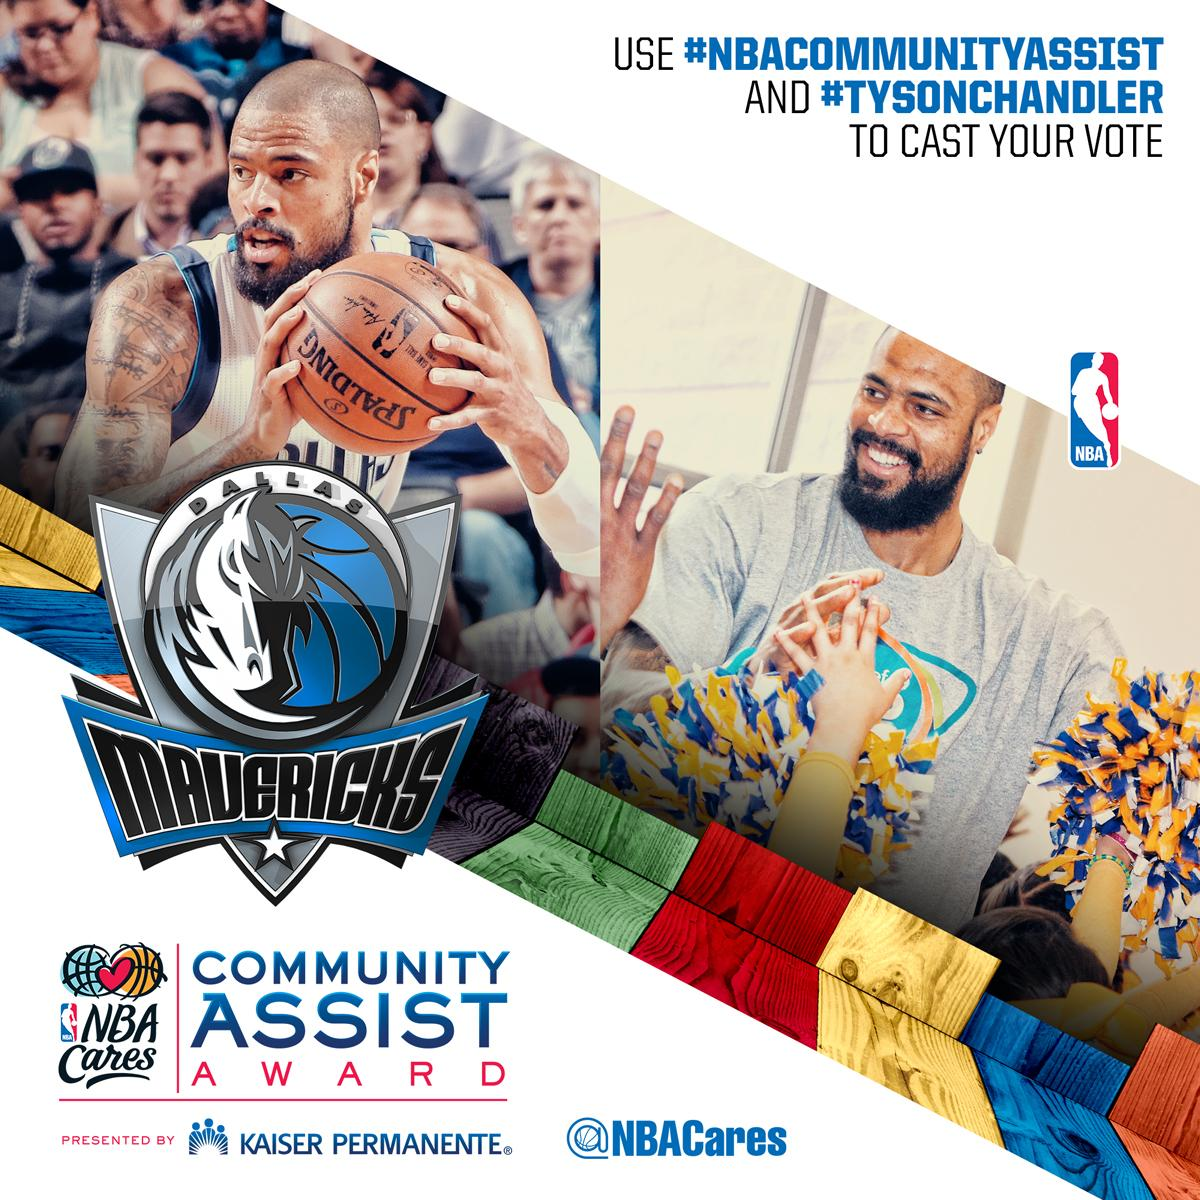 I'm nominated for the @nbacares #NBACommunityAssist Award with $25K going to @unicefusa if I win! Please RT to vote! http://t.co/uRxnzdIE64